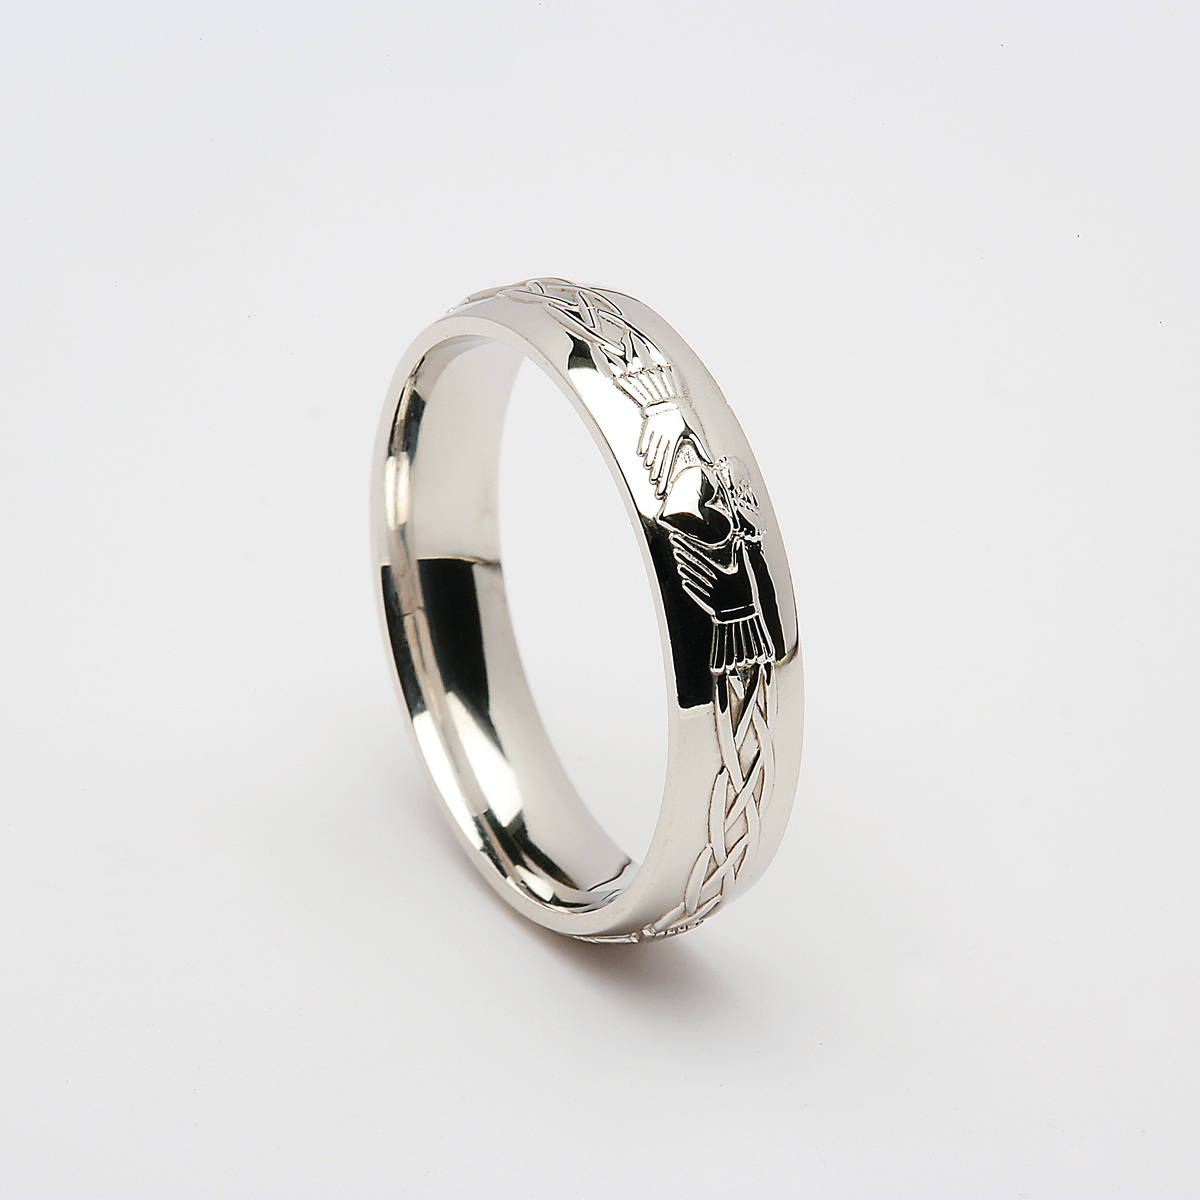 18 carat white gold unisex Claddagh wedding band in the D/shape.5.5mm approx